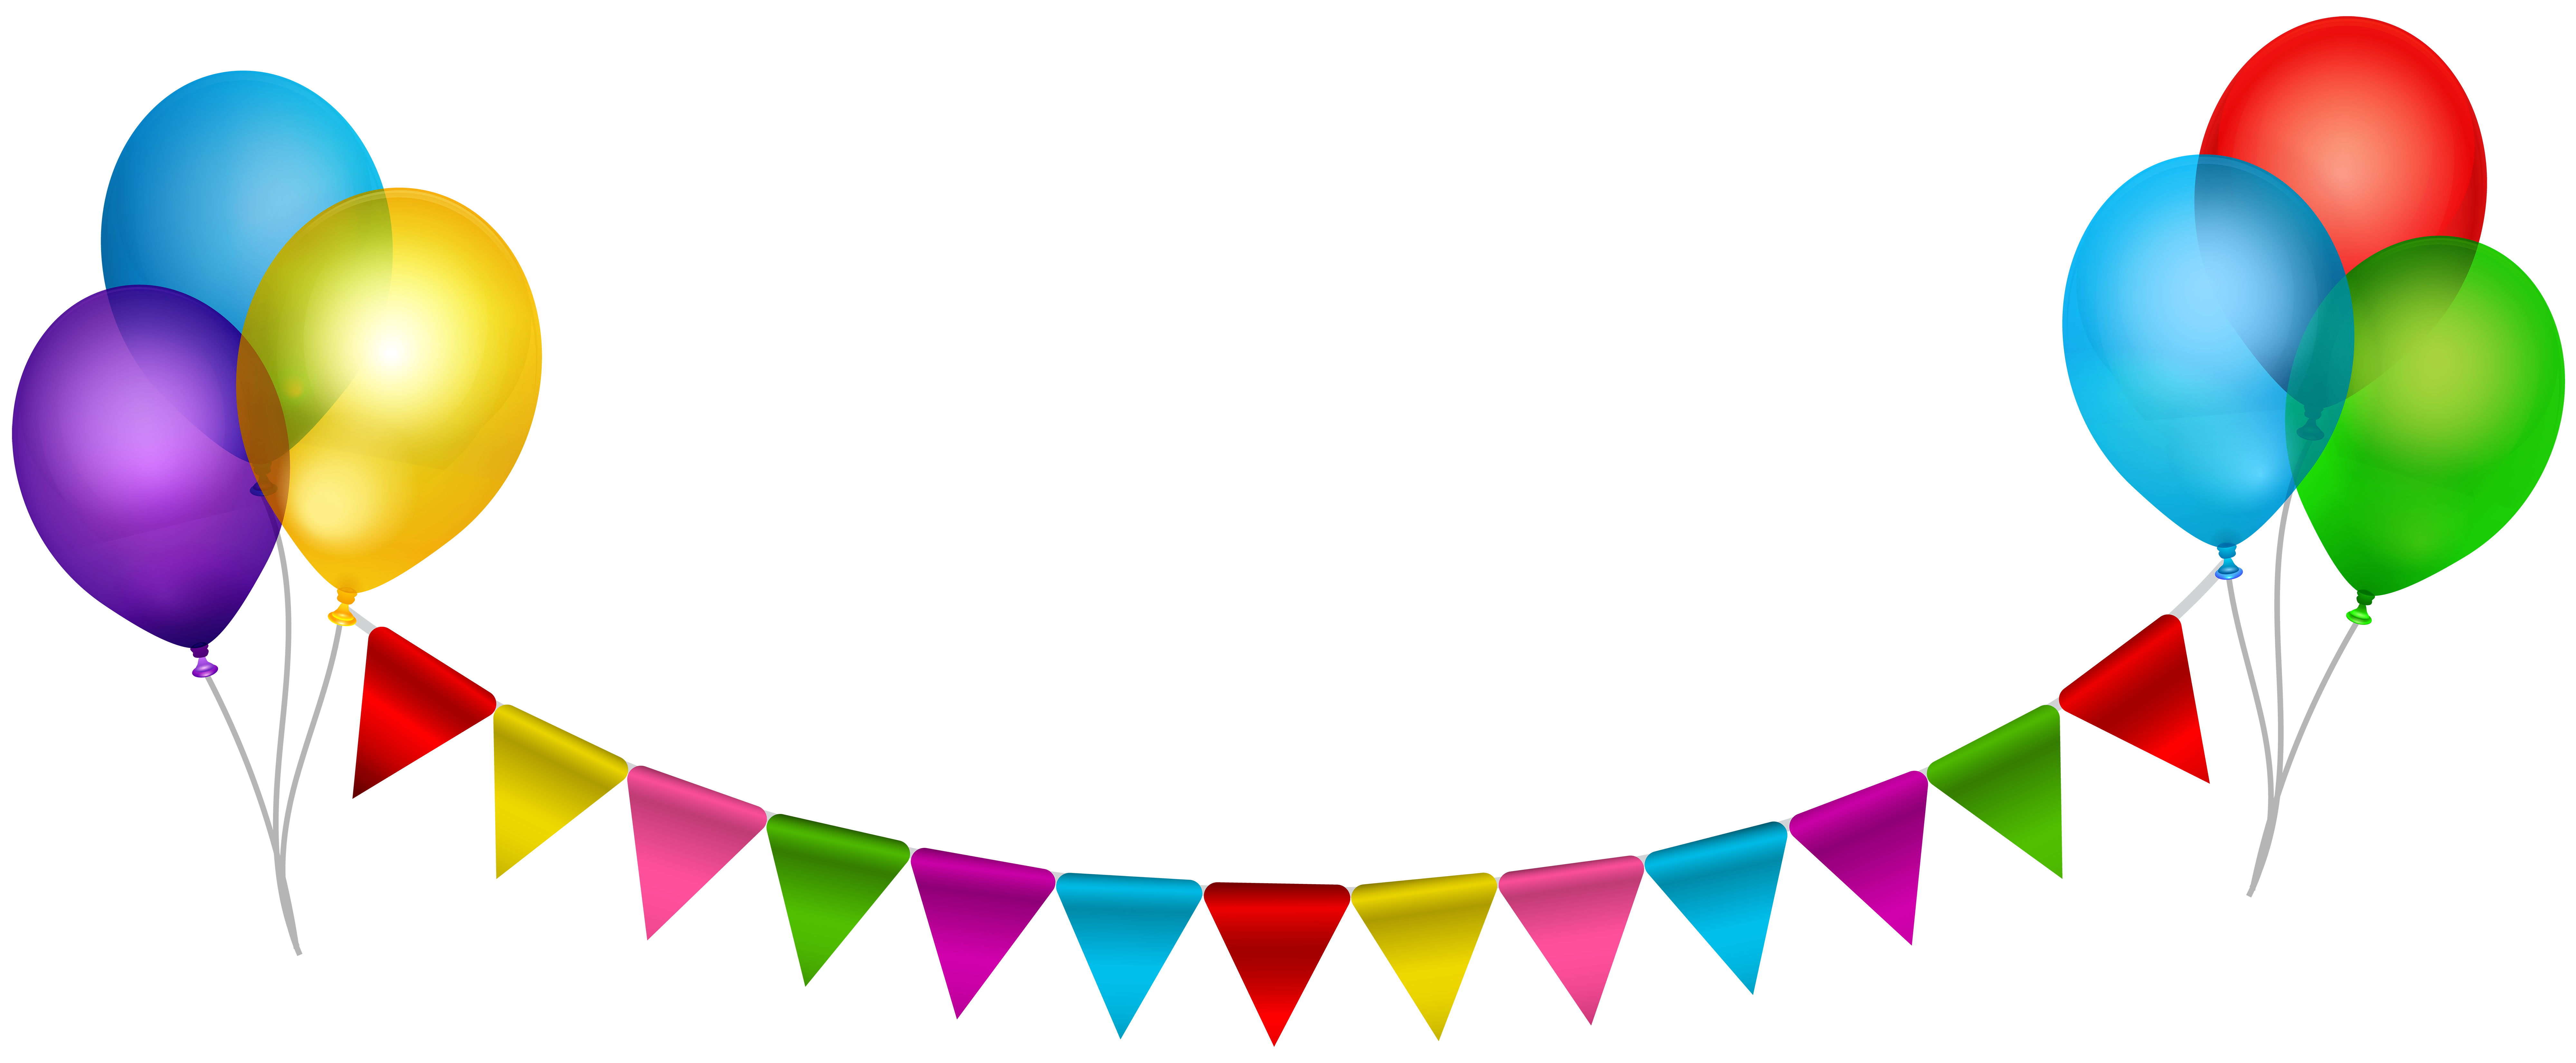 Party streamers png. Streamer with balloons transparent